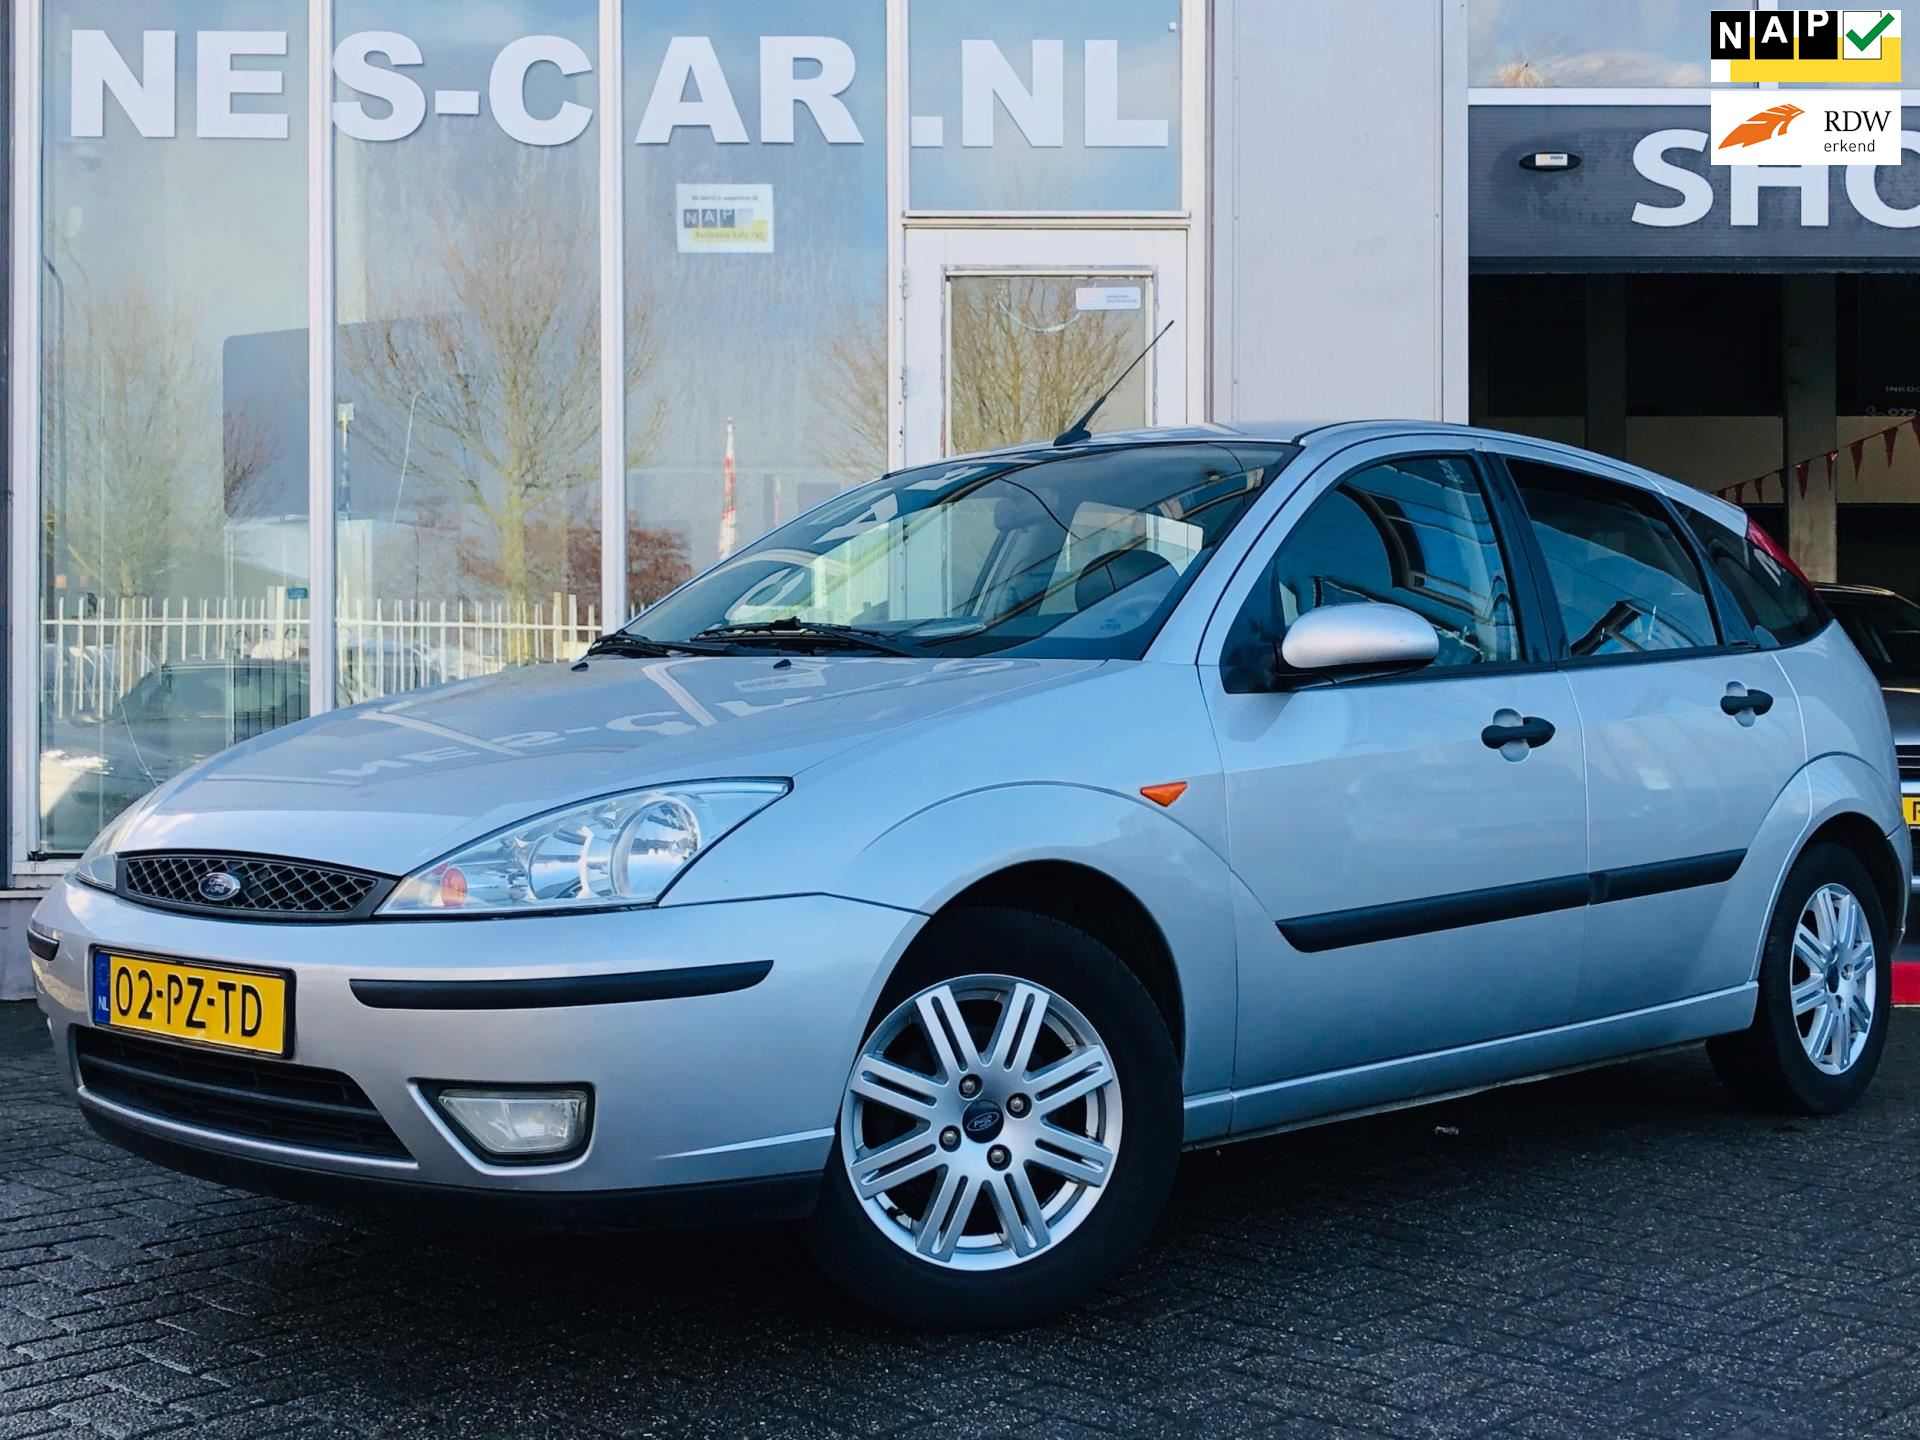 Ford Focus occasion - Nescar